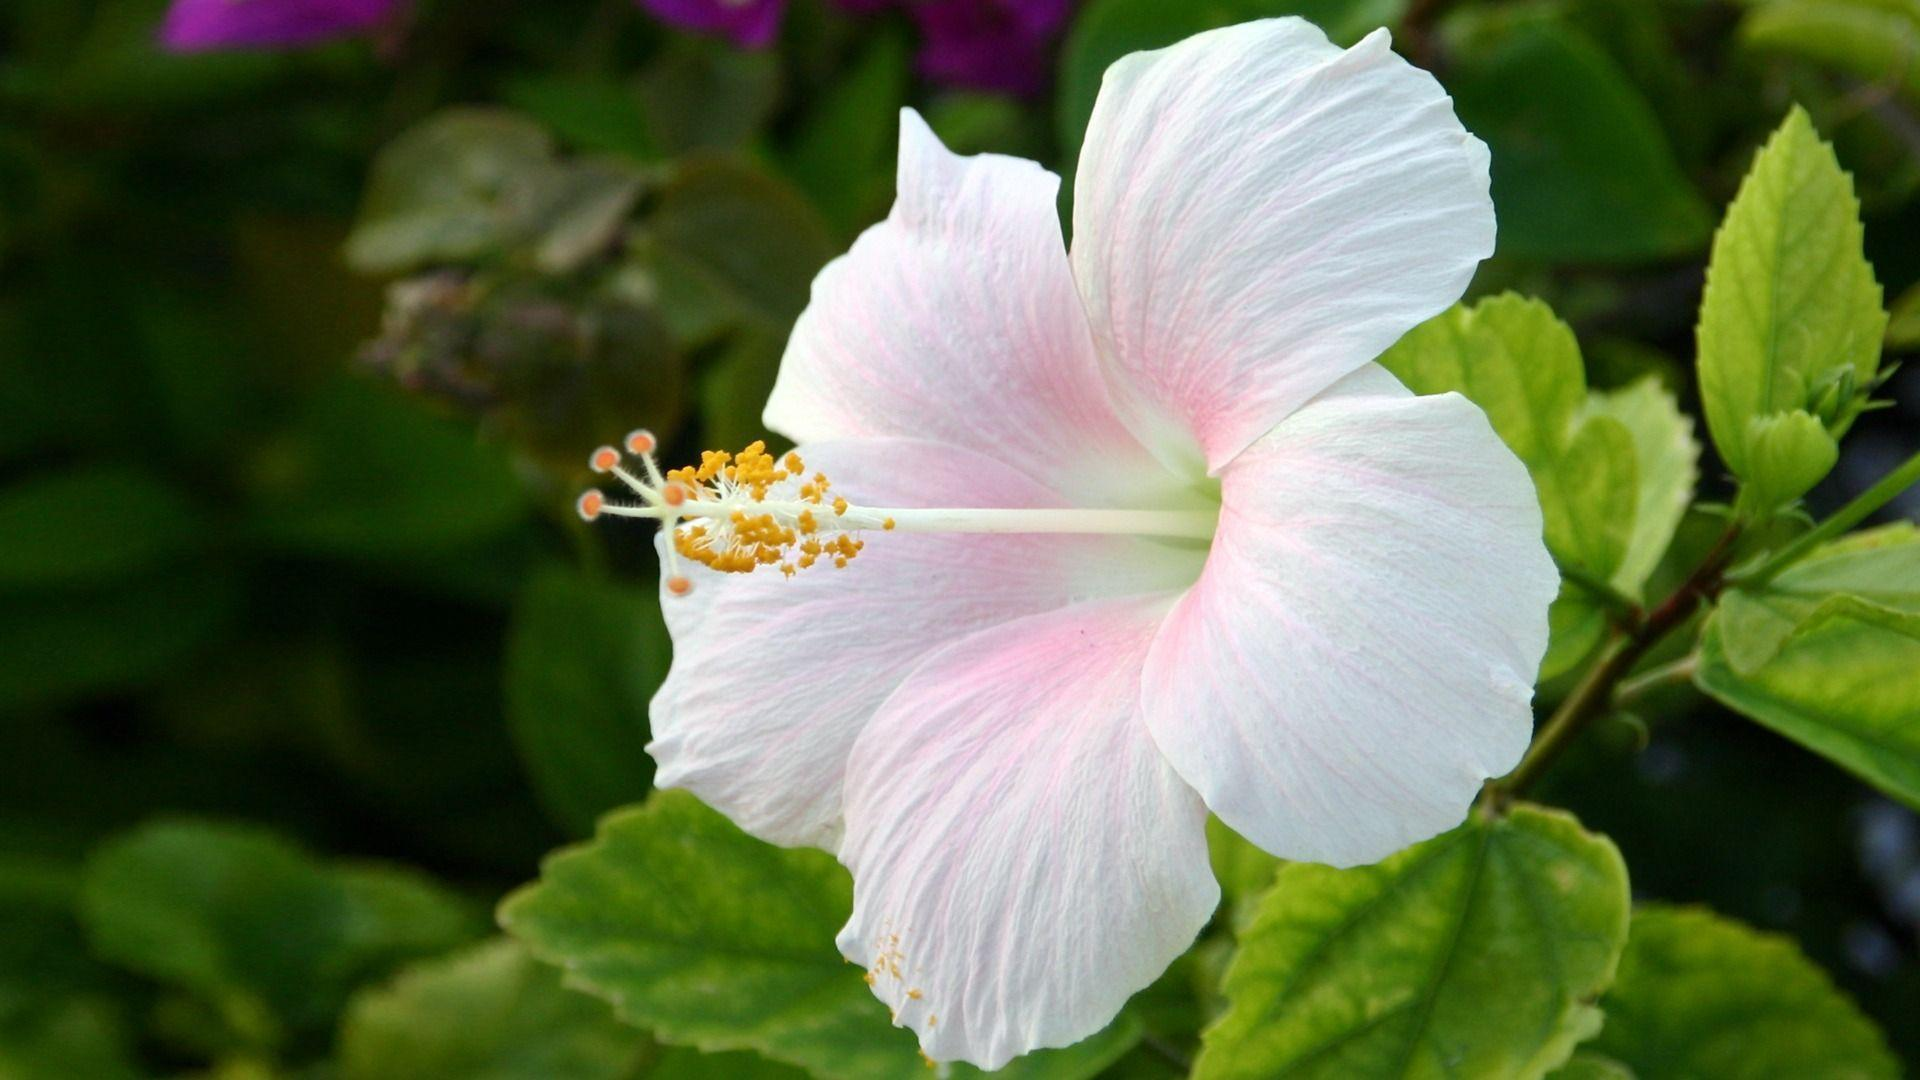 Hibiscus flower wallpapers wallpaper cave hibiscus flower izmirmasajfo